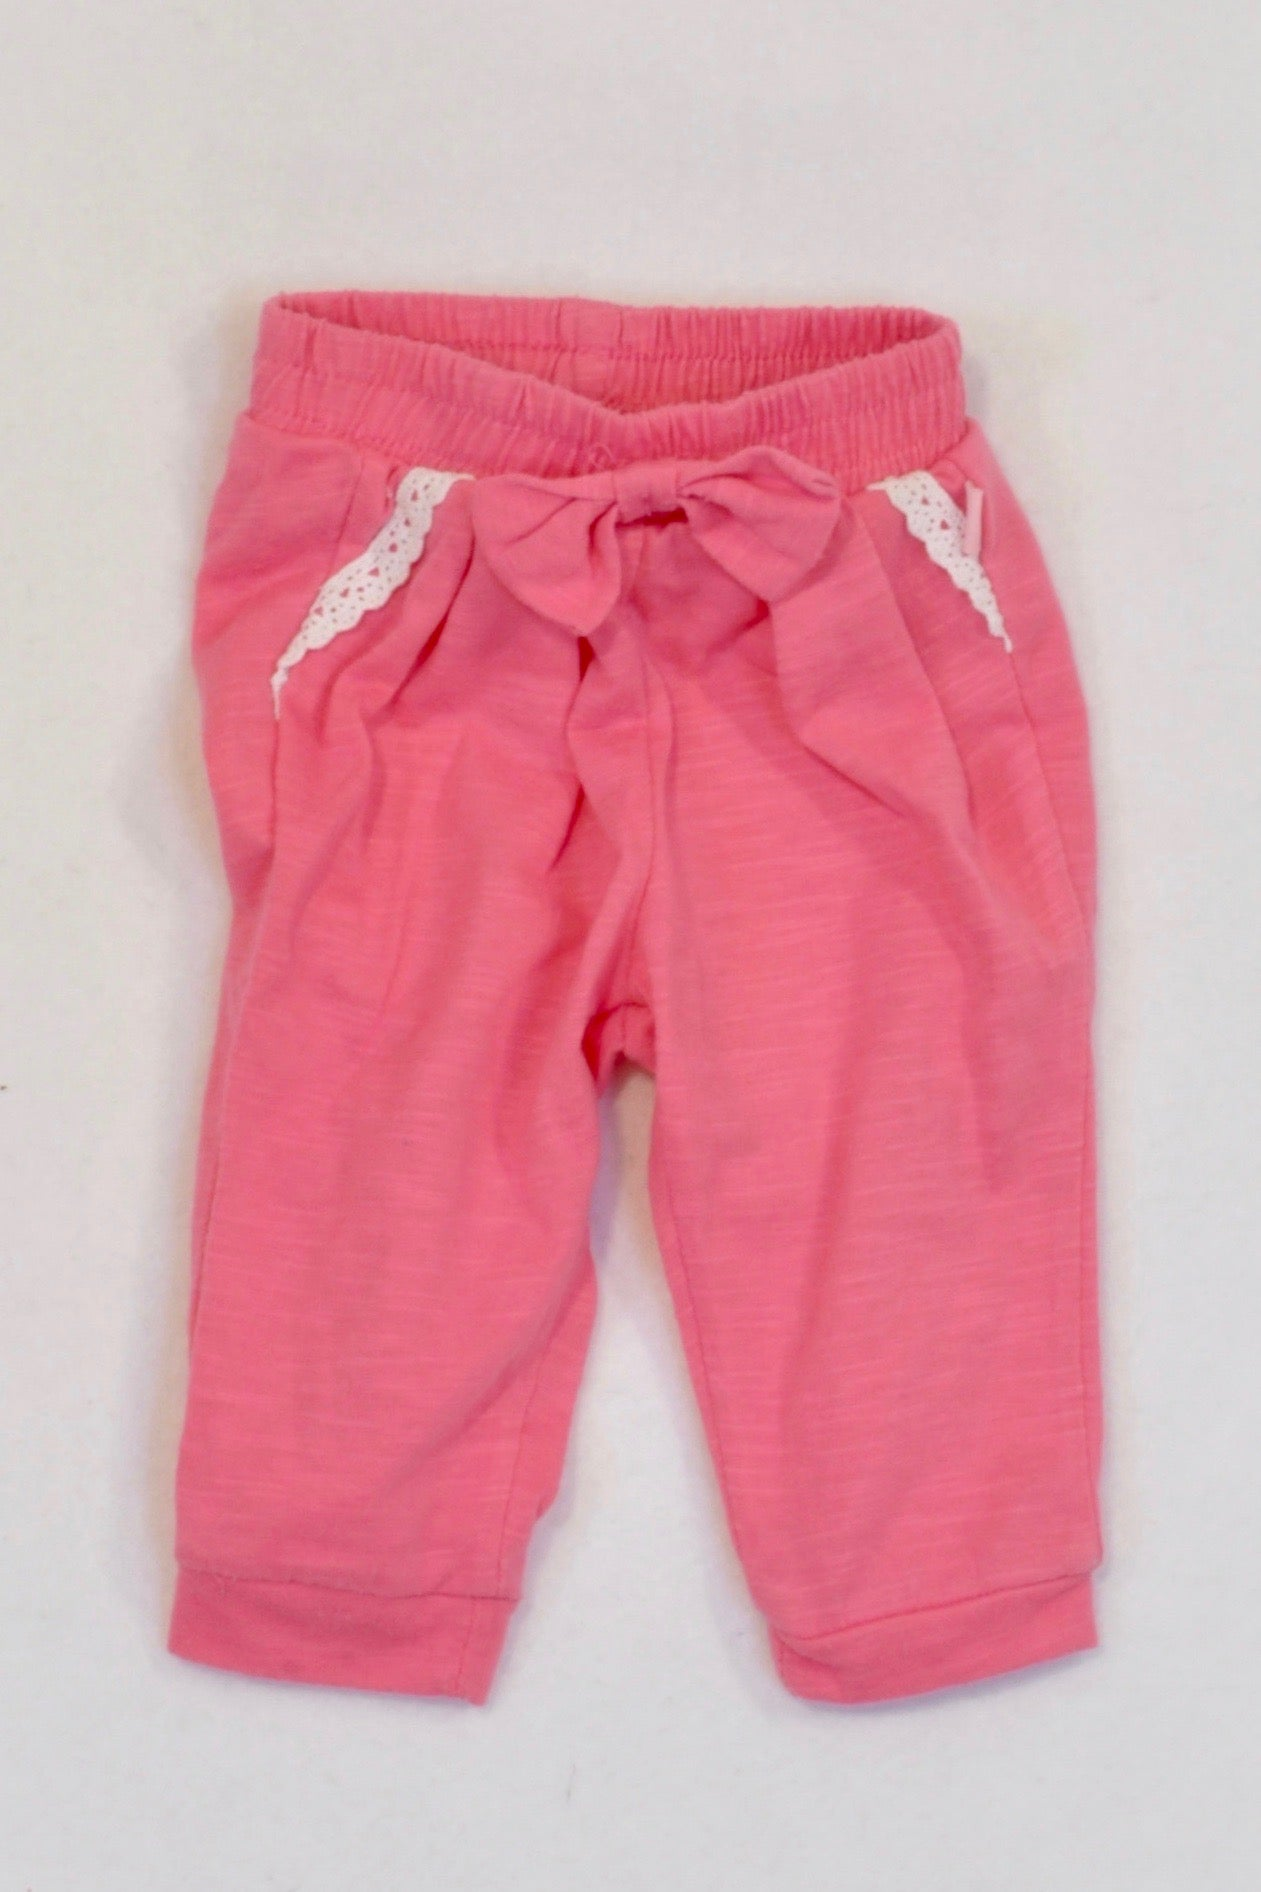 Ackermans Pink Embroidered Lightweight Cuffed Pants Girls 0-3 months